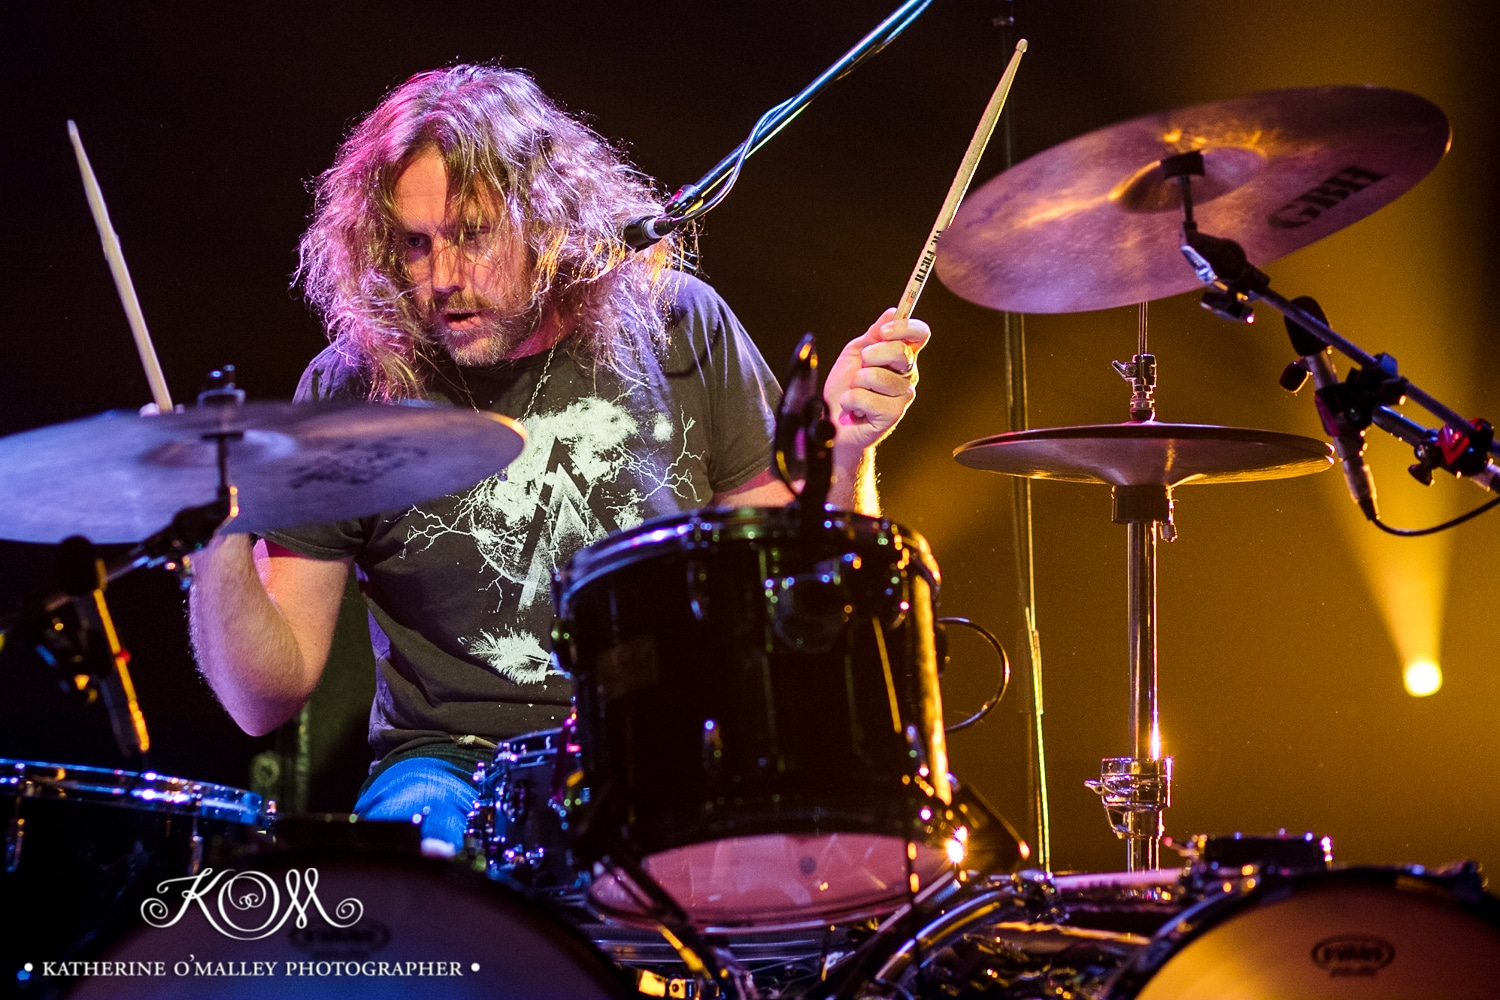 Mark Maher aka Kram/Spiderbait @ The Tivoli. © katherine o'malley, 2017